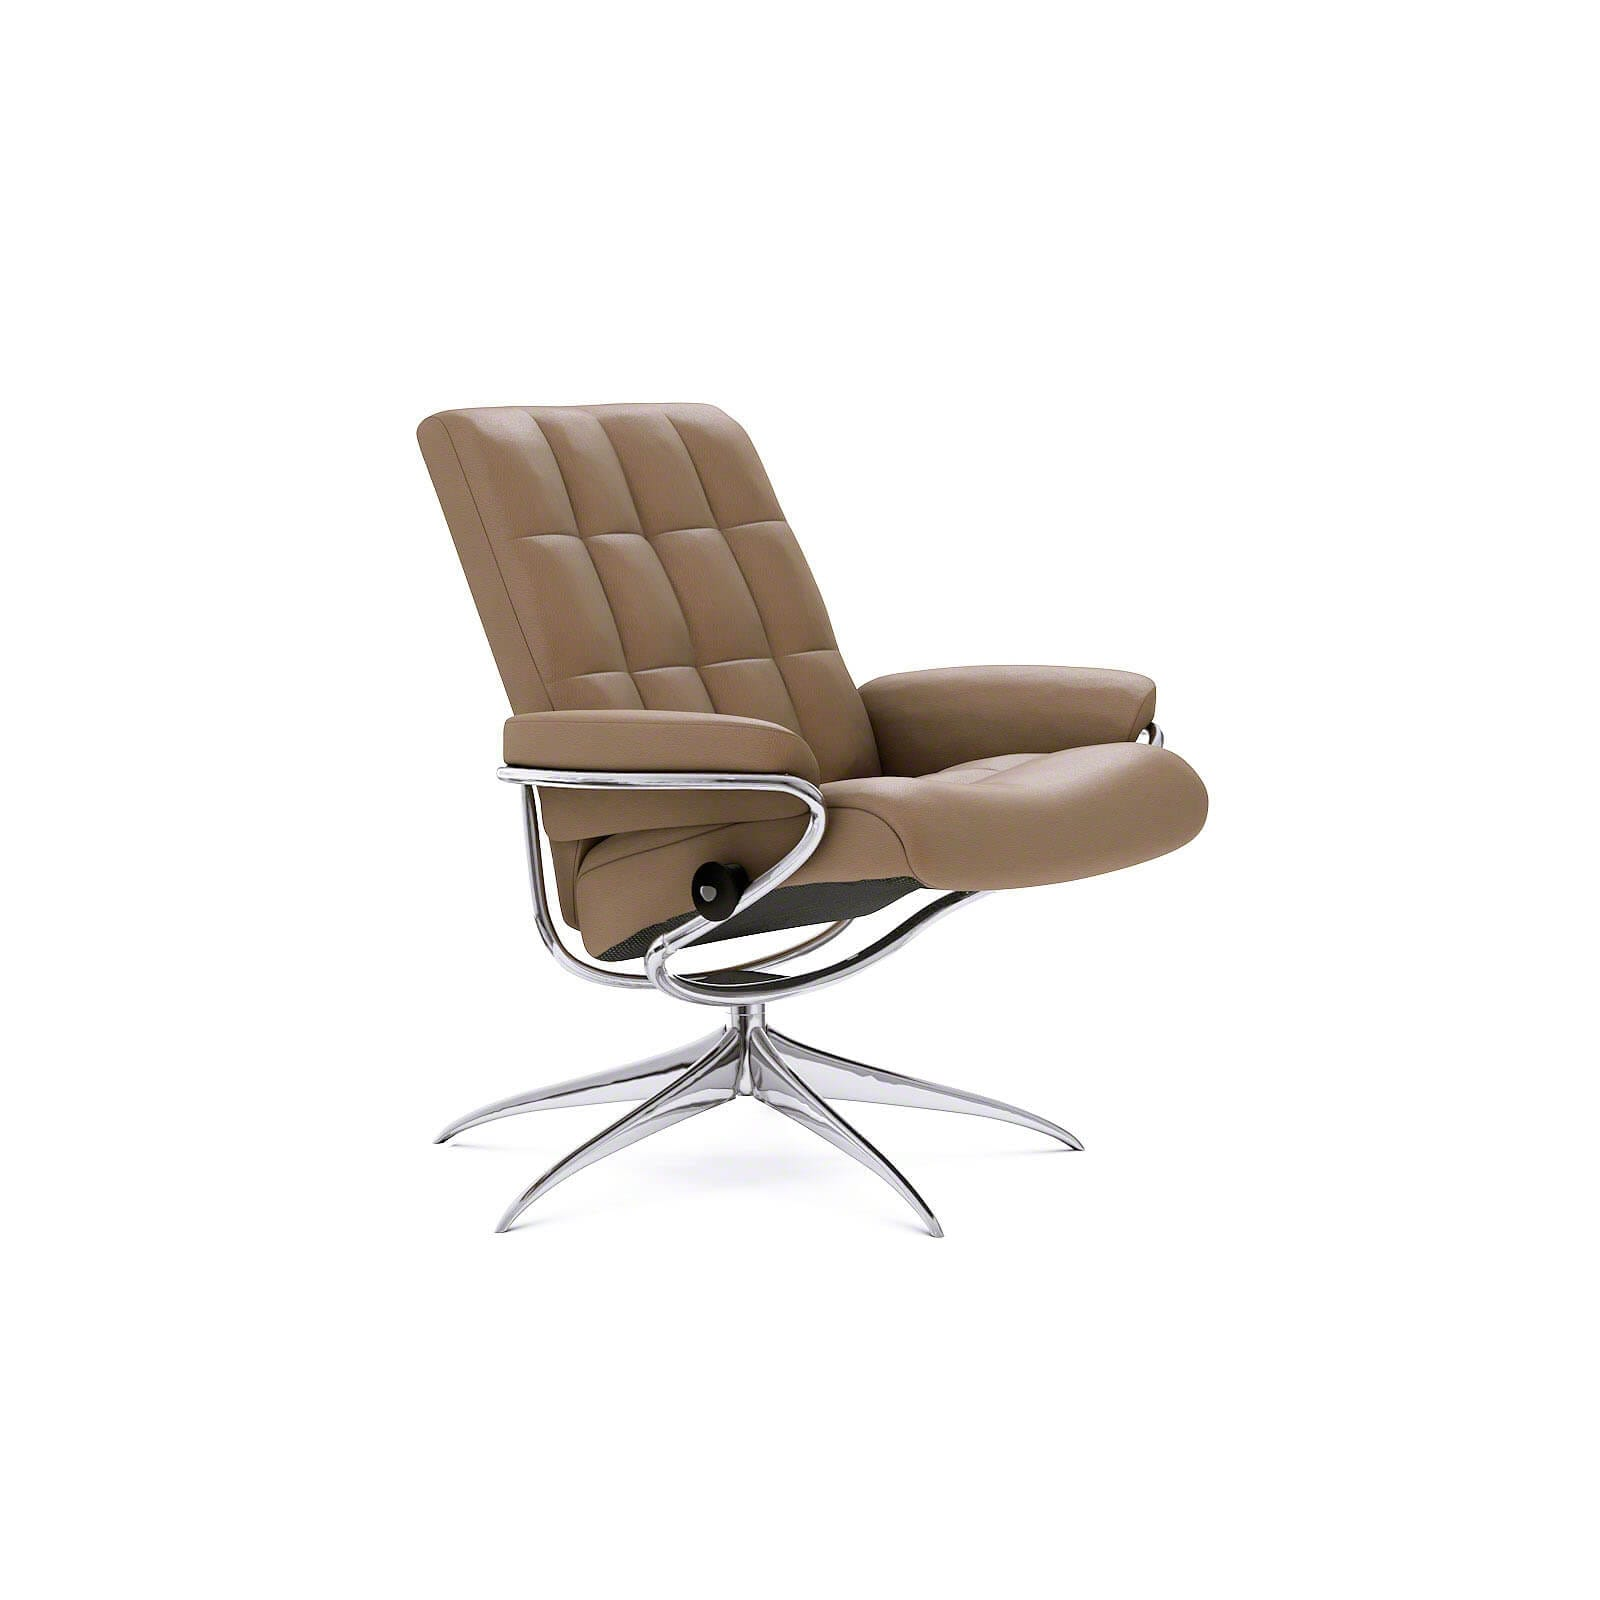 Summer Casual Geflecht Relax-sessel Stressless London Sessel Mit Niedriger Lehne Lederfarbe Funghi